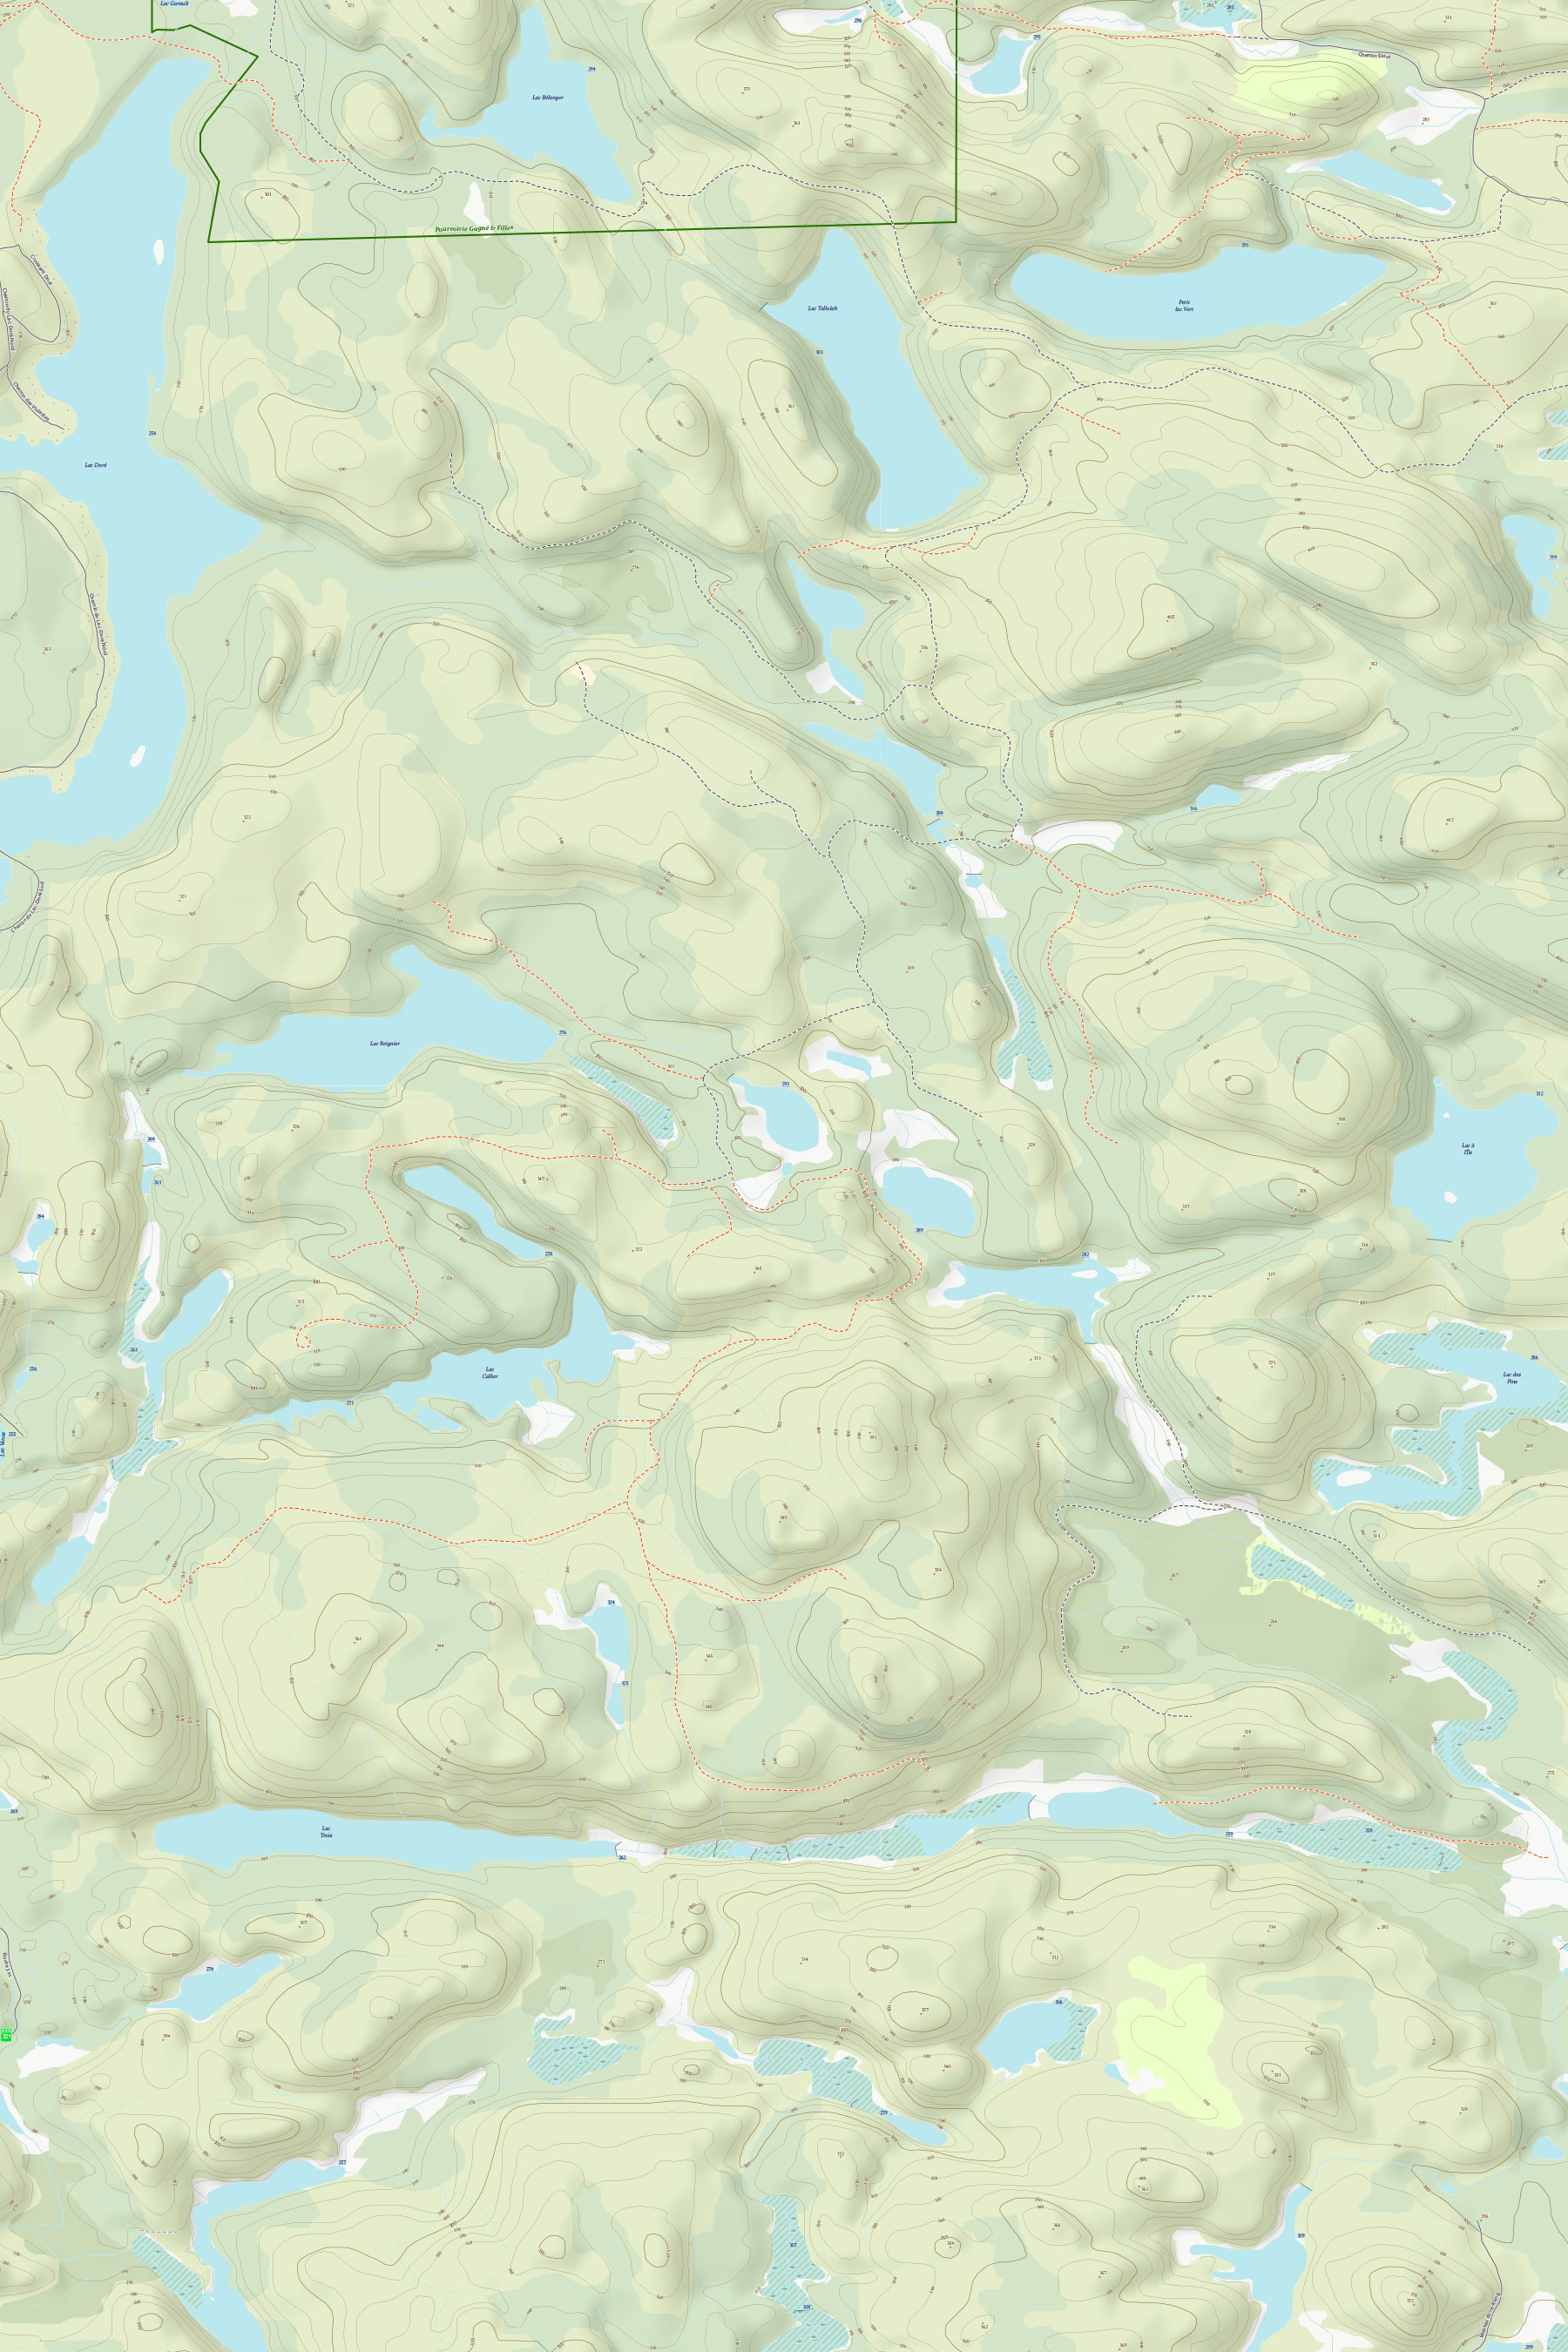 Example 3 of Topographic Map